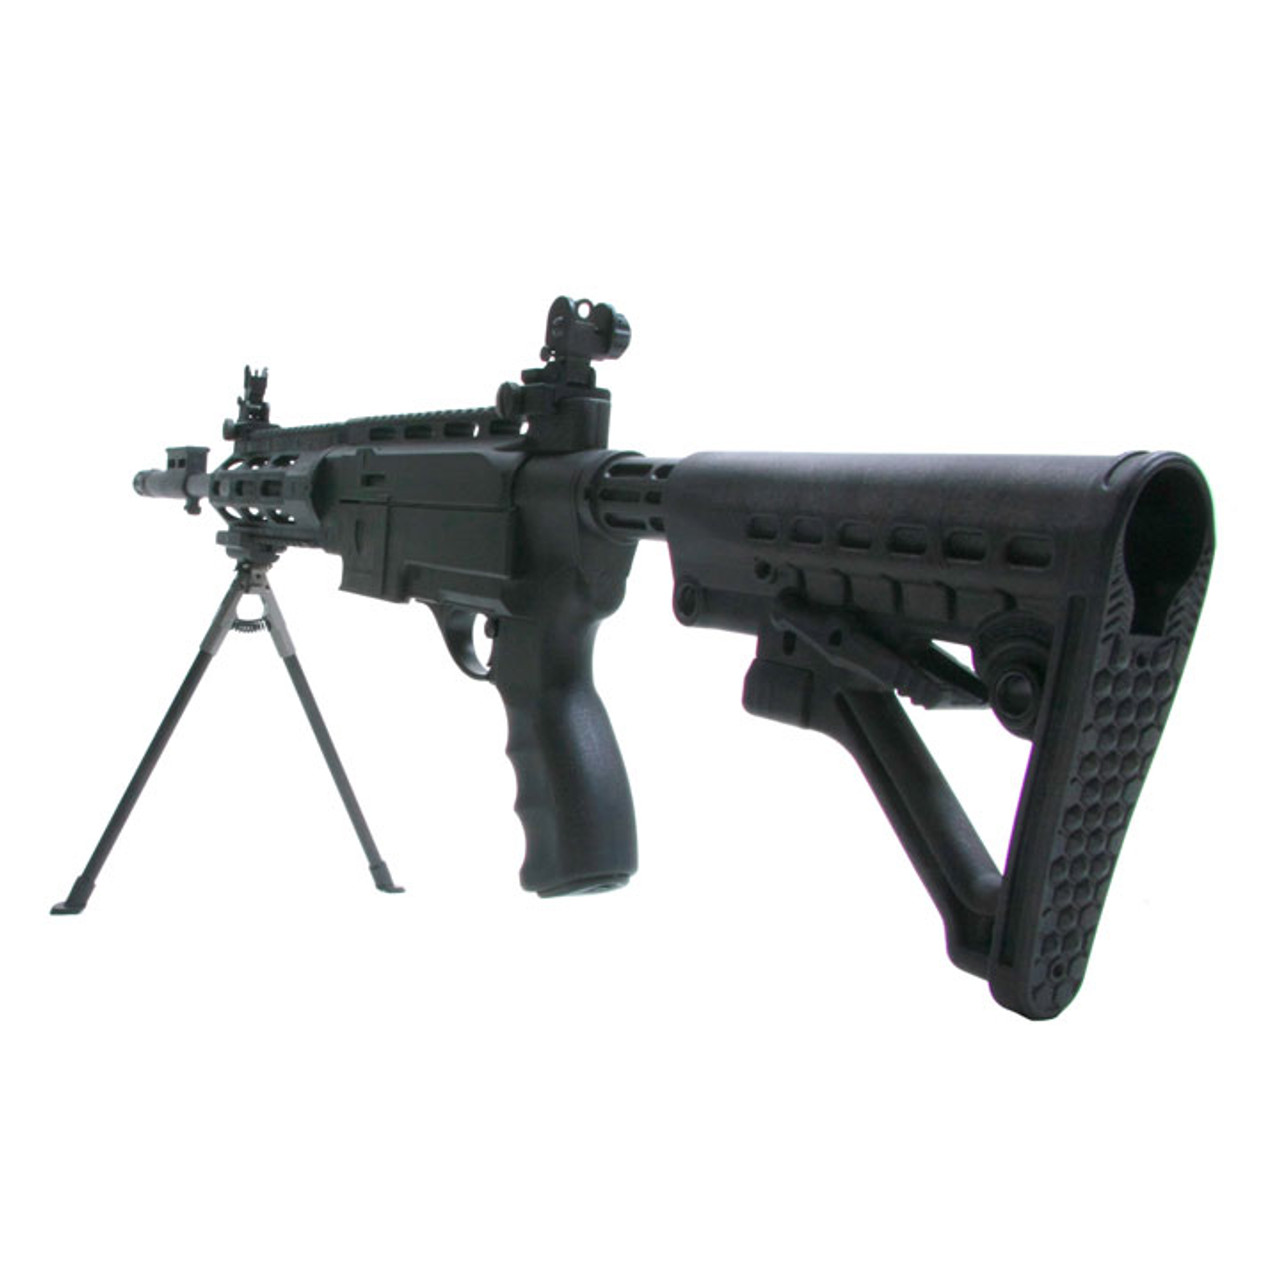 Archangel® Conversion Stock for the Remington® Model 597™ - Black Polymer